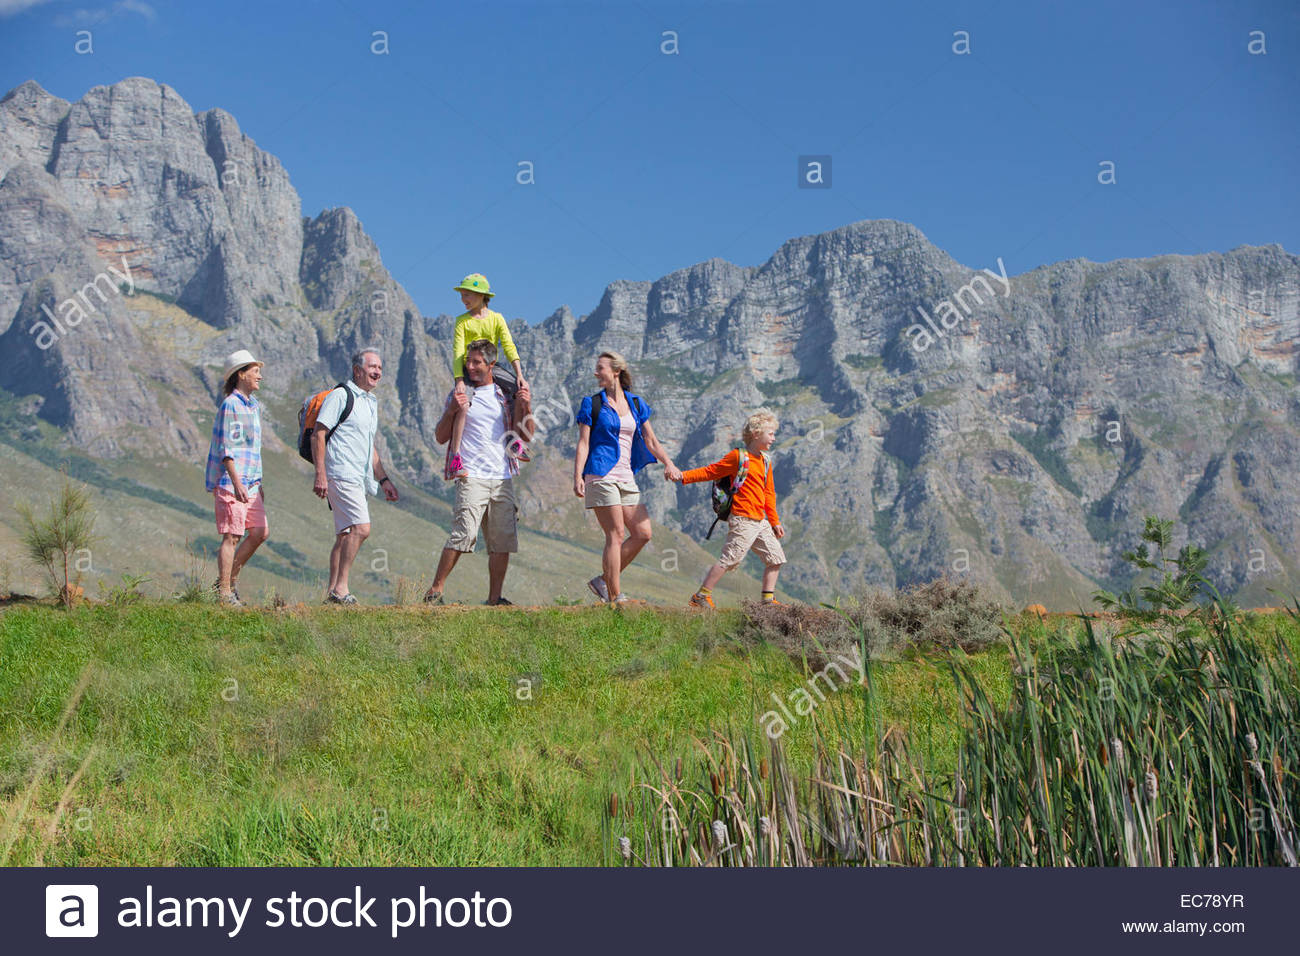 Multi generation family hiking on mountain path - Stock Image